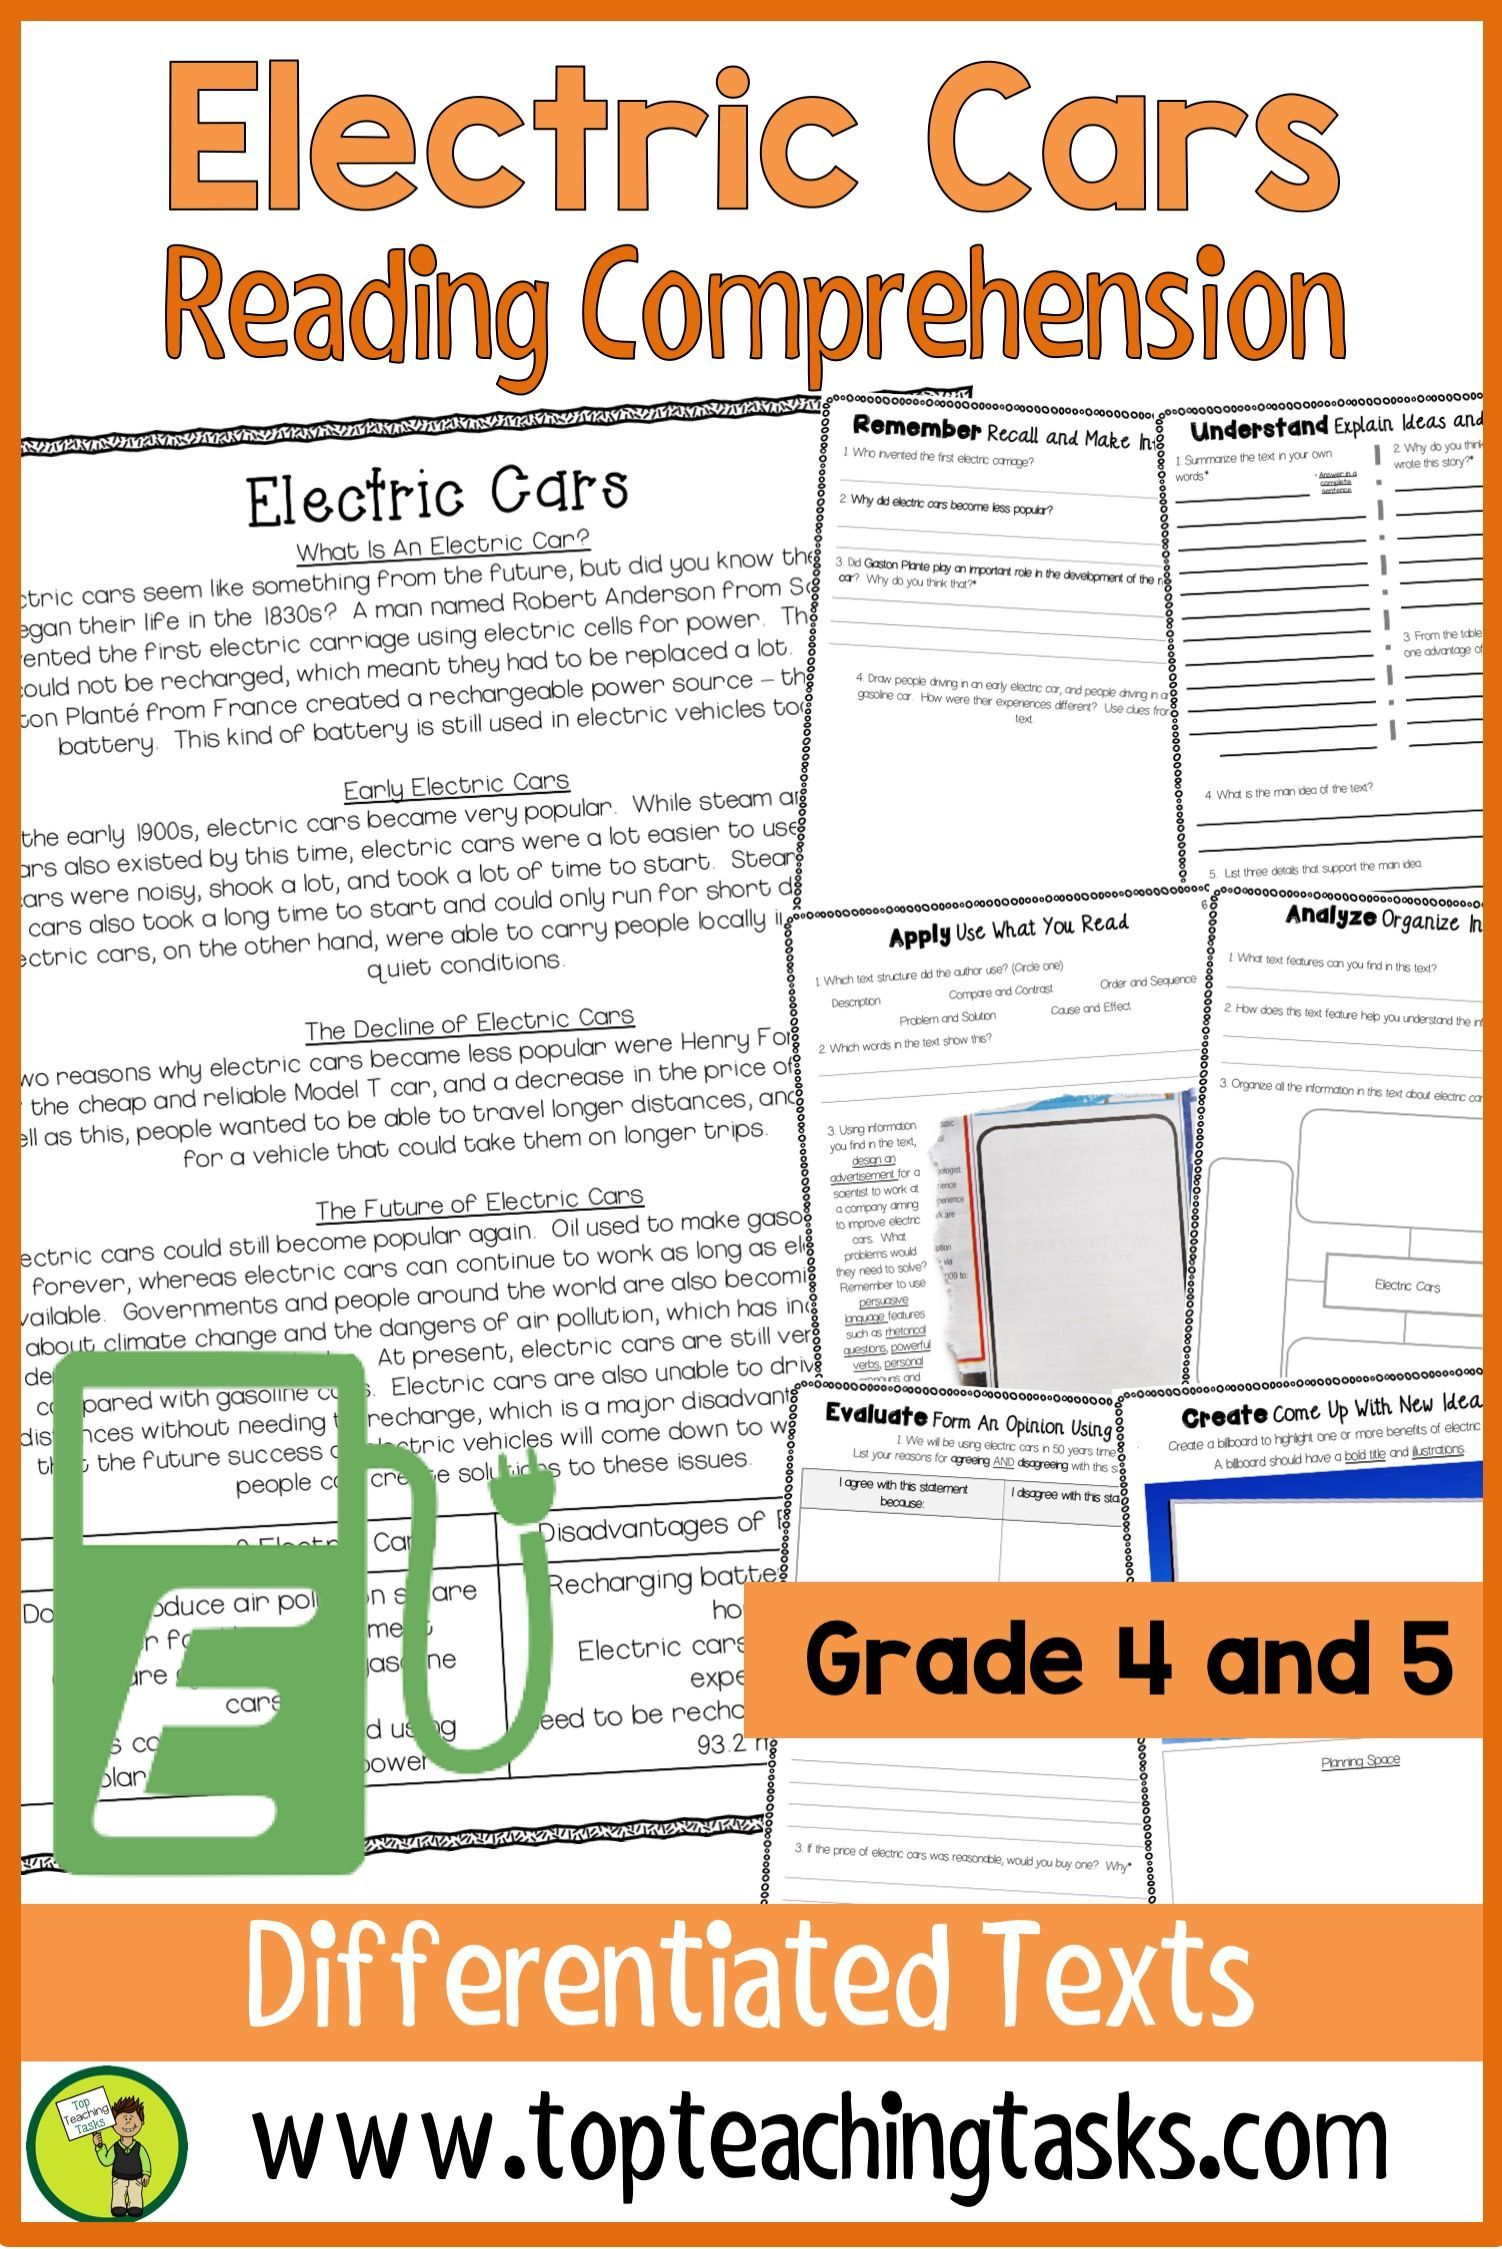 Electric Cars Reading Comprehension Passages And Questions